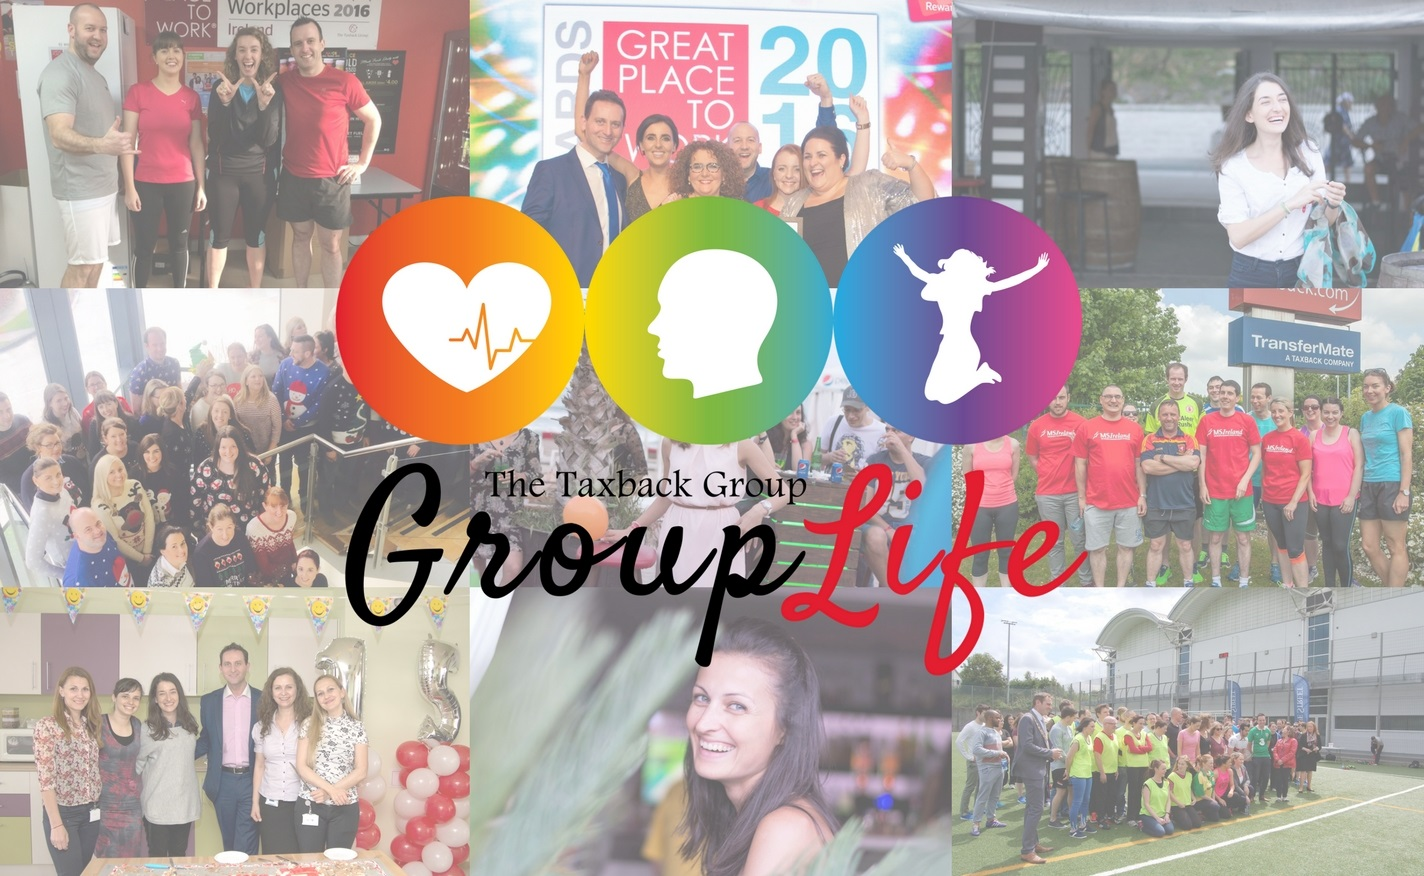 GroupLife @ The Taxback Group